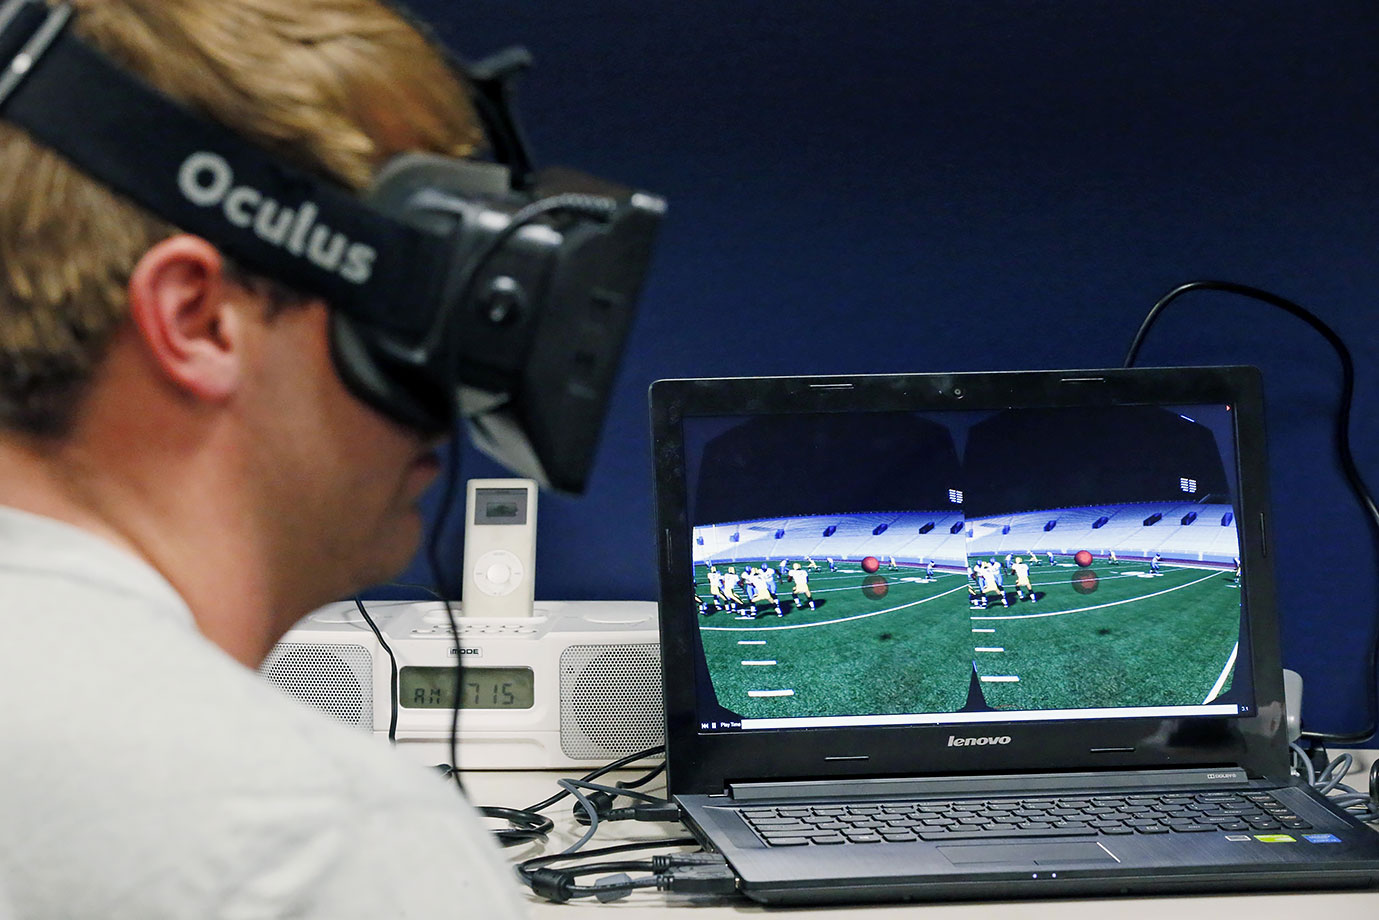 Ole Miss quarterback Ryan Buchanan uses a virtual reality headset to make football play decisions on July 27, 2015 at the Manning Center in Oxford, Miss.